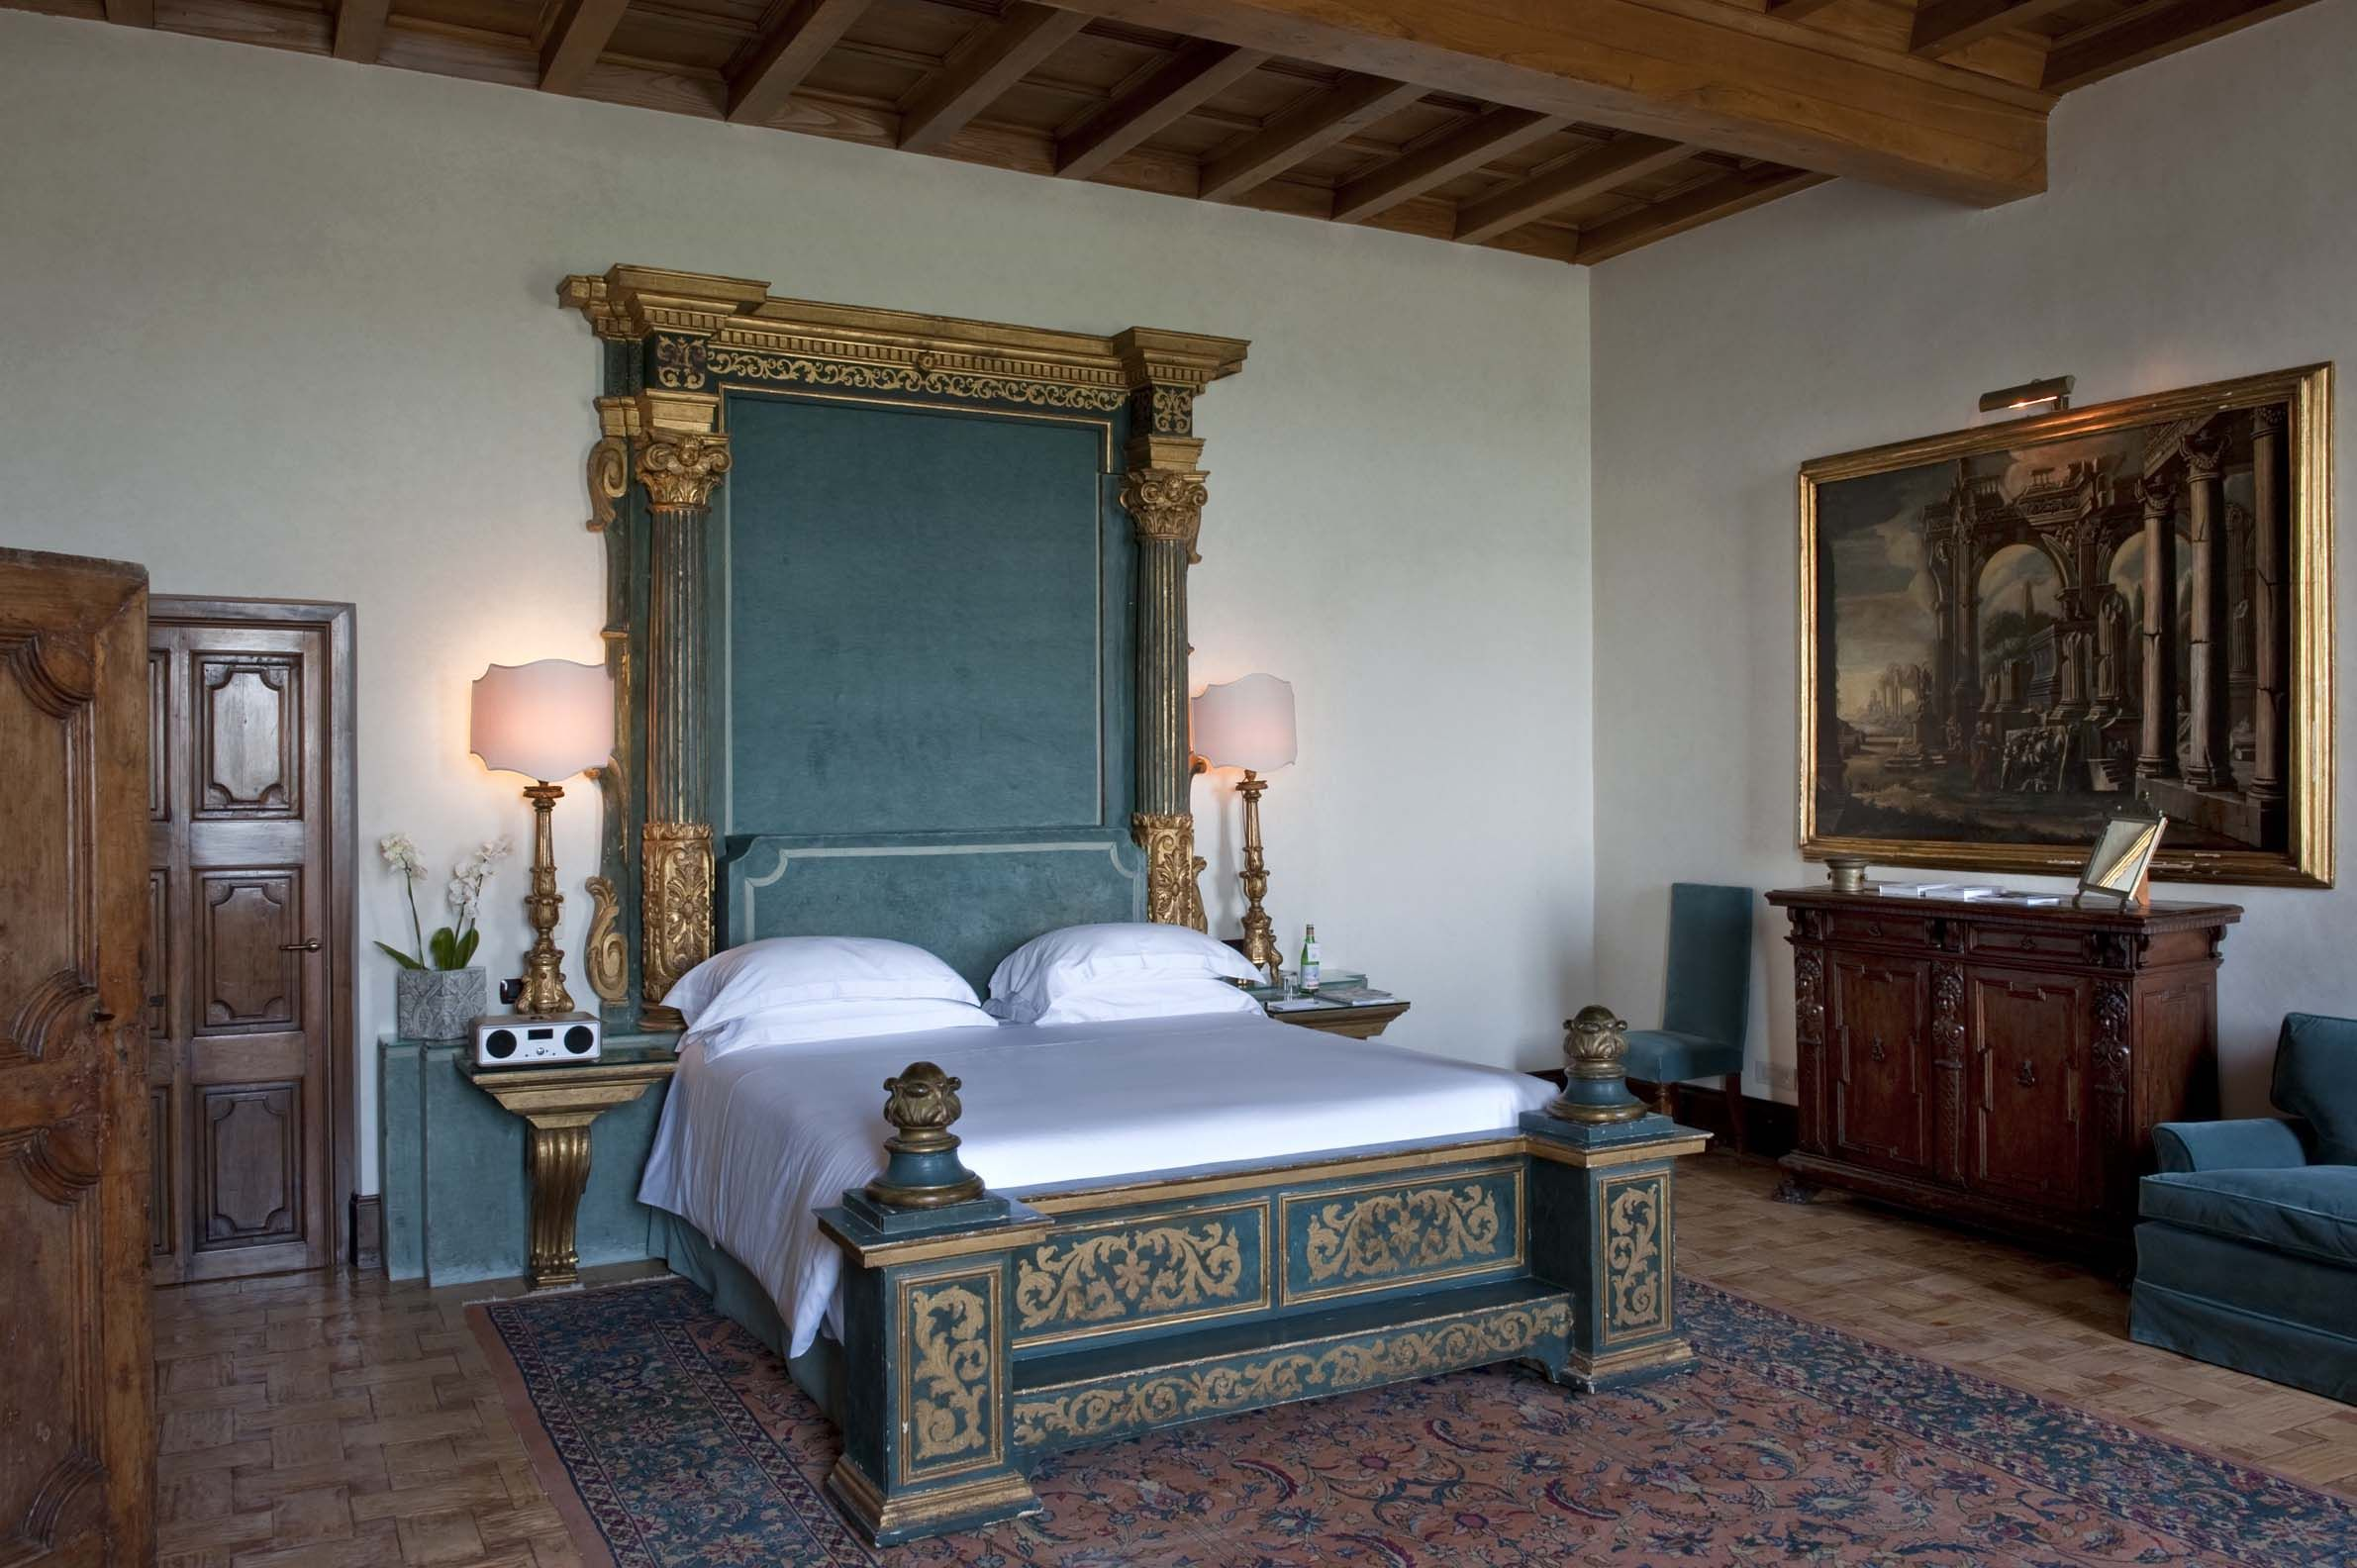 Jennifer aniston home interior medici master suite at la posta vecchia hotel  suite dreams